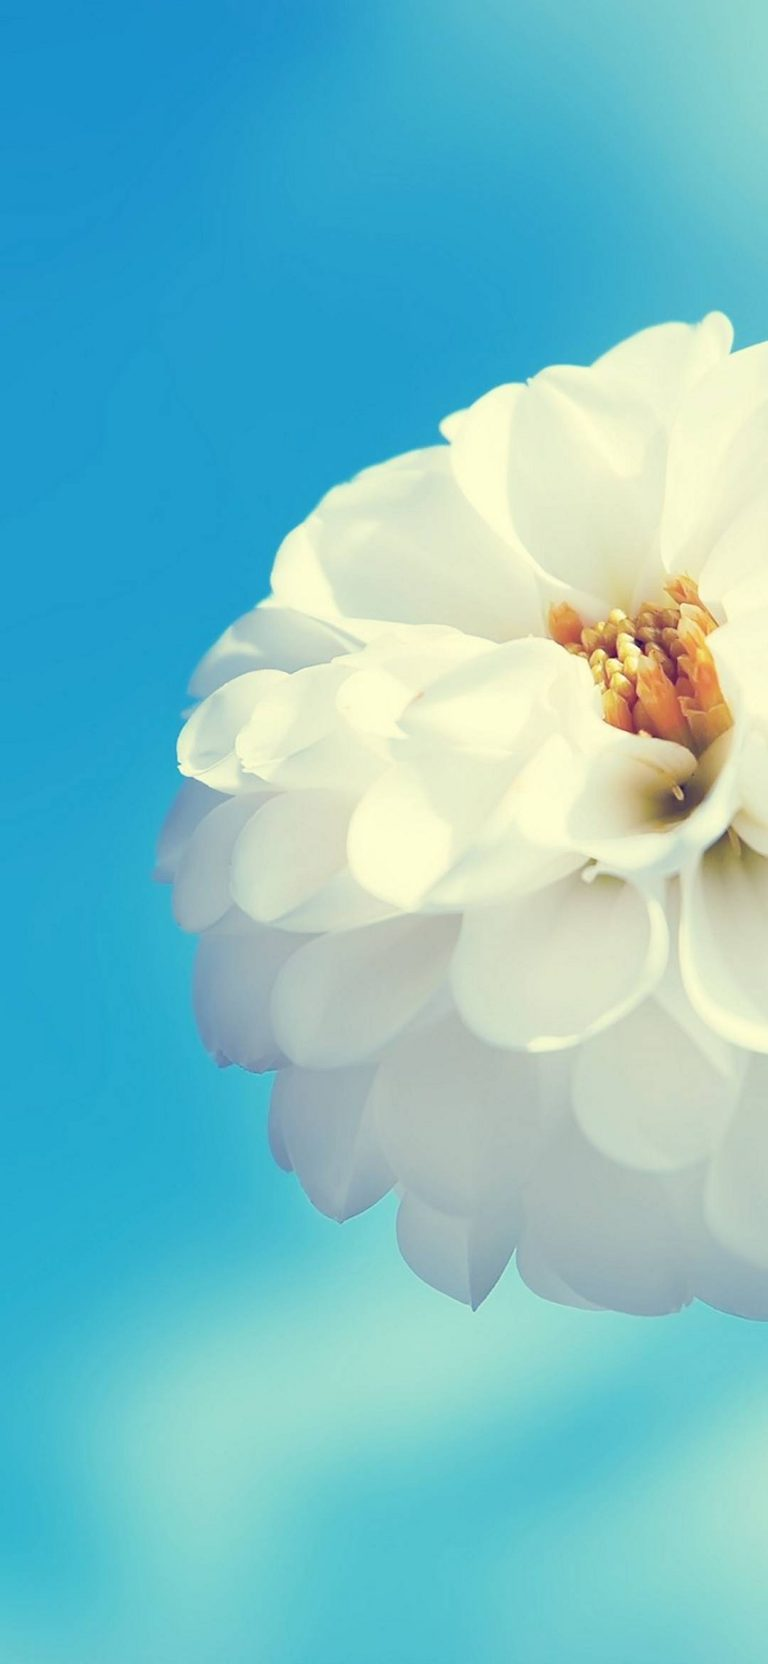 White Flower And Blue Sky 1080x2340 768x1664